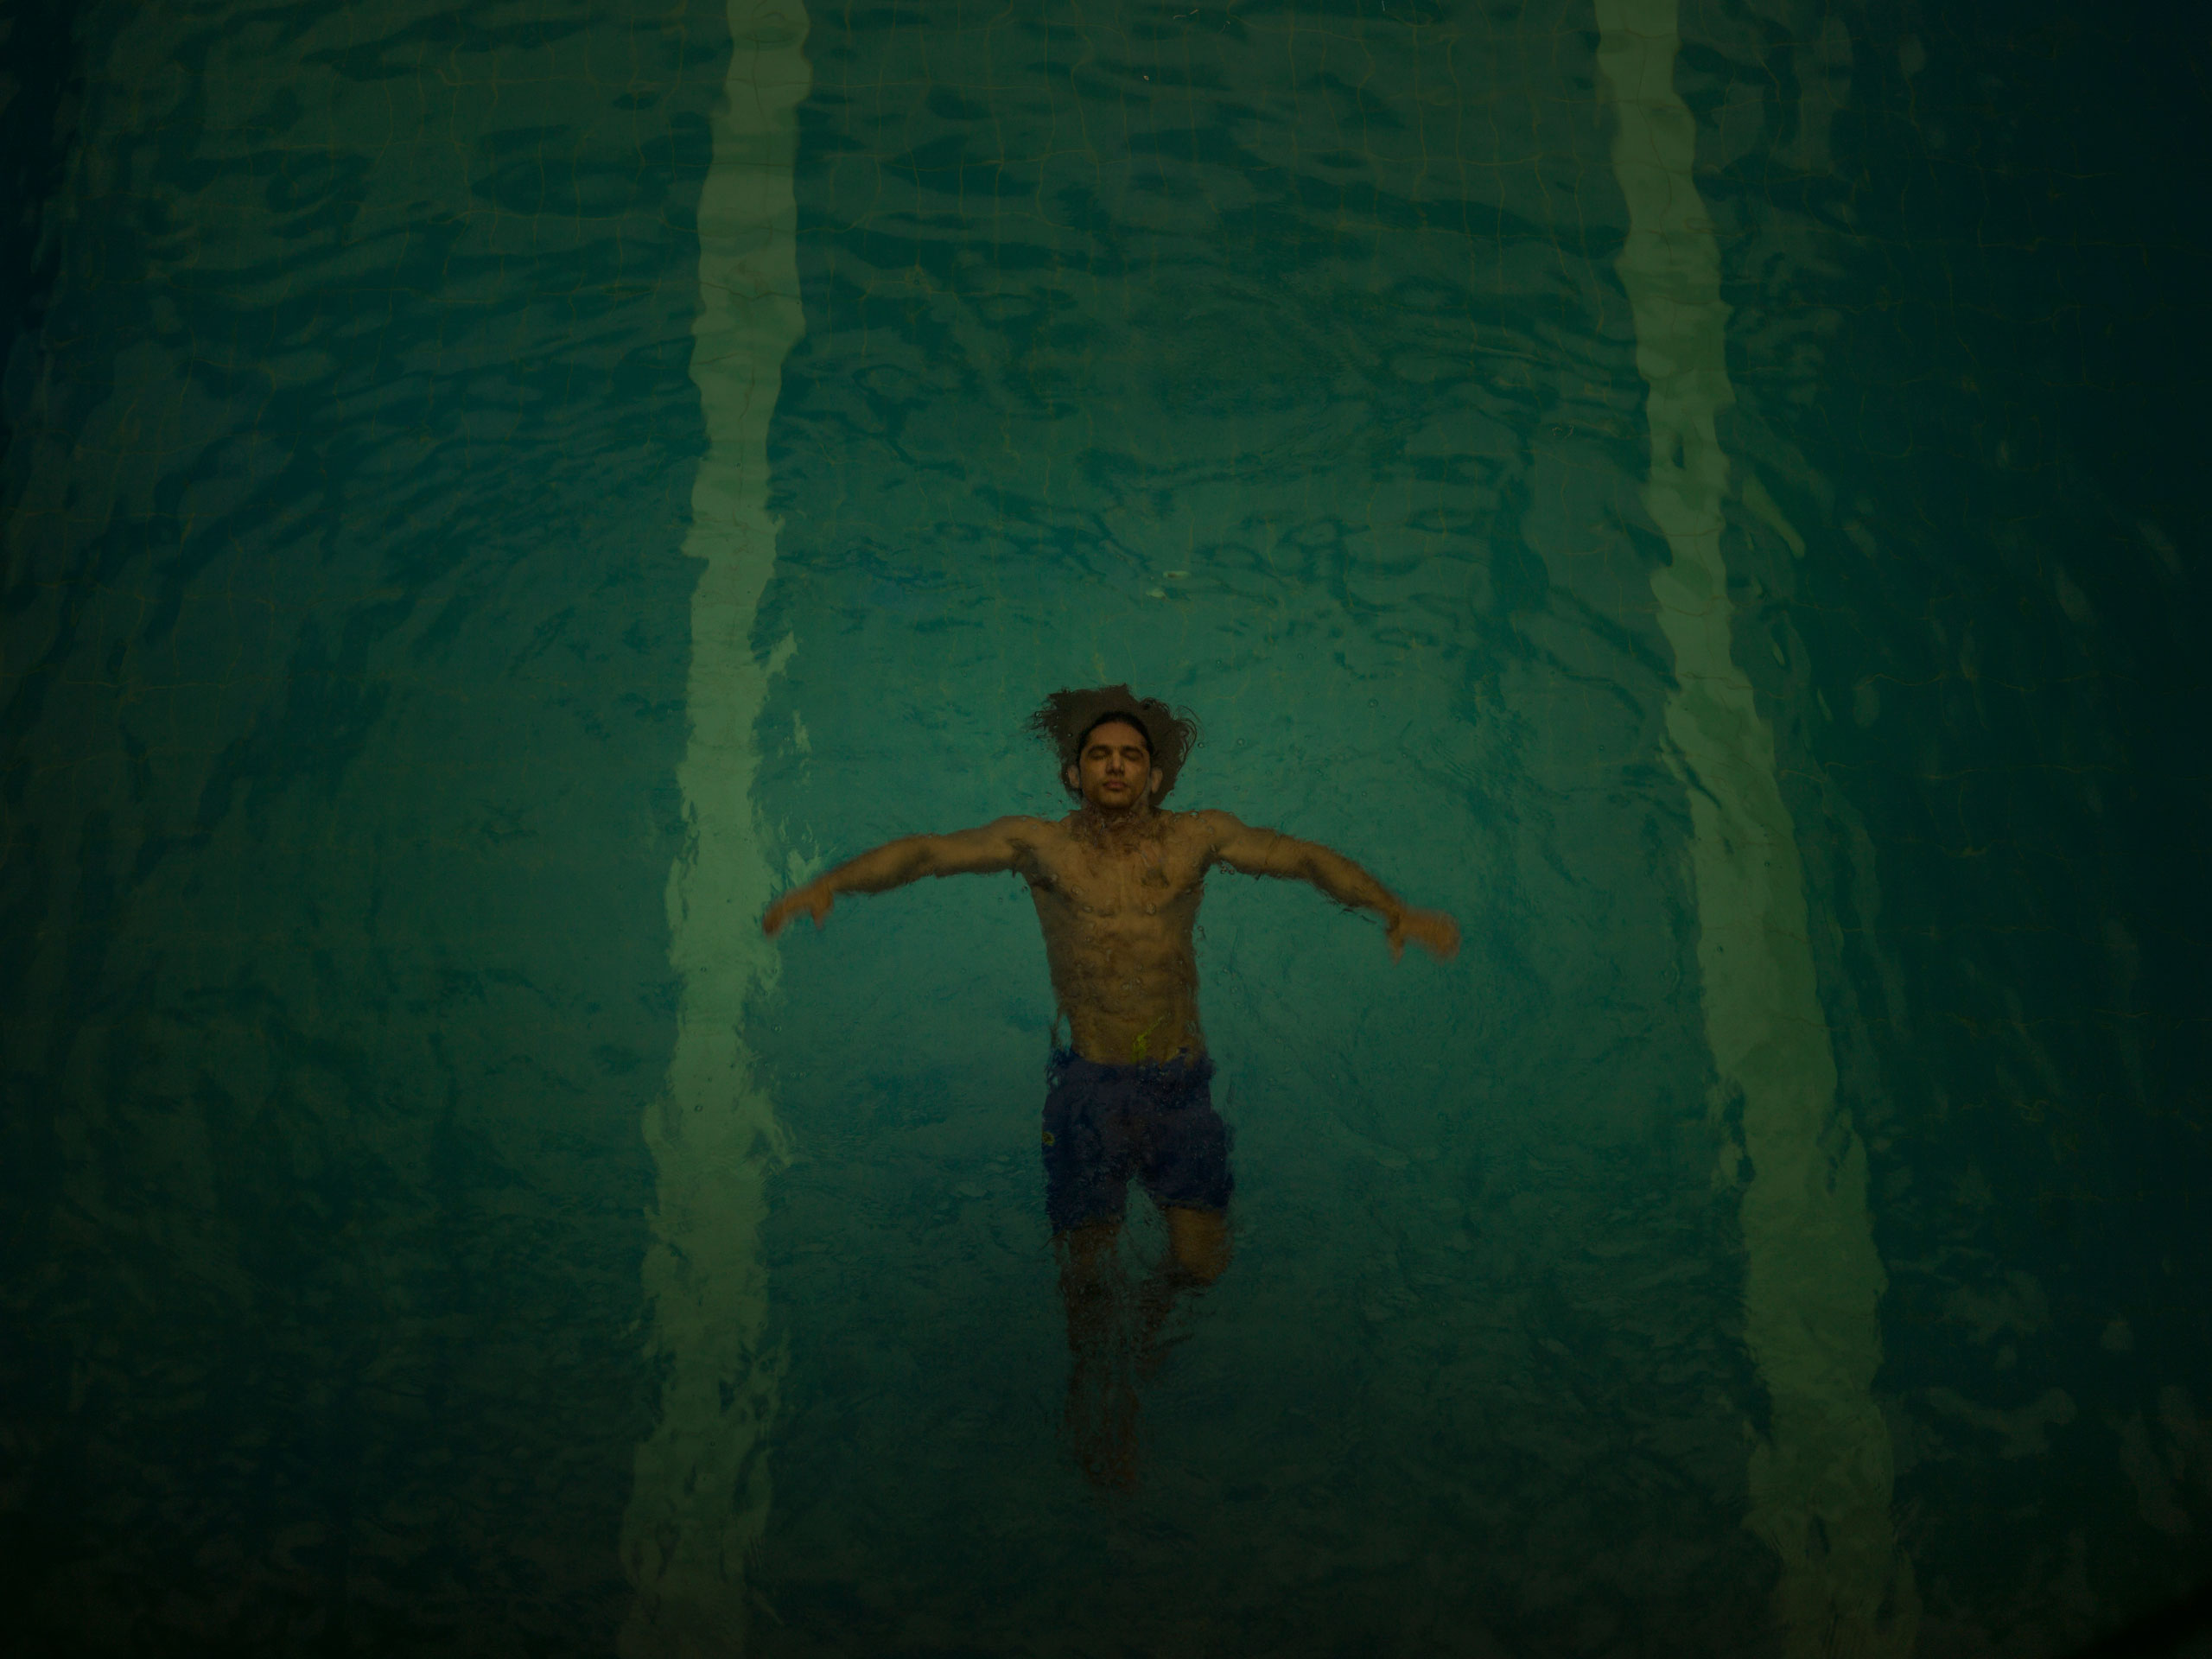 Arash Fayazi swims in the pool of the Royal Oxygen Sports Club. Fazeli is a body building champion and regularly exercises at the pool.